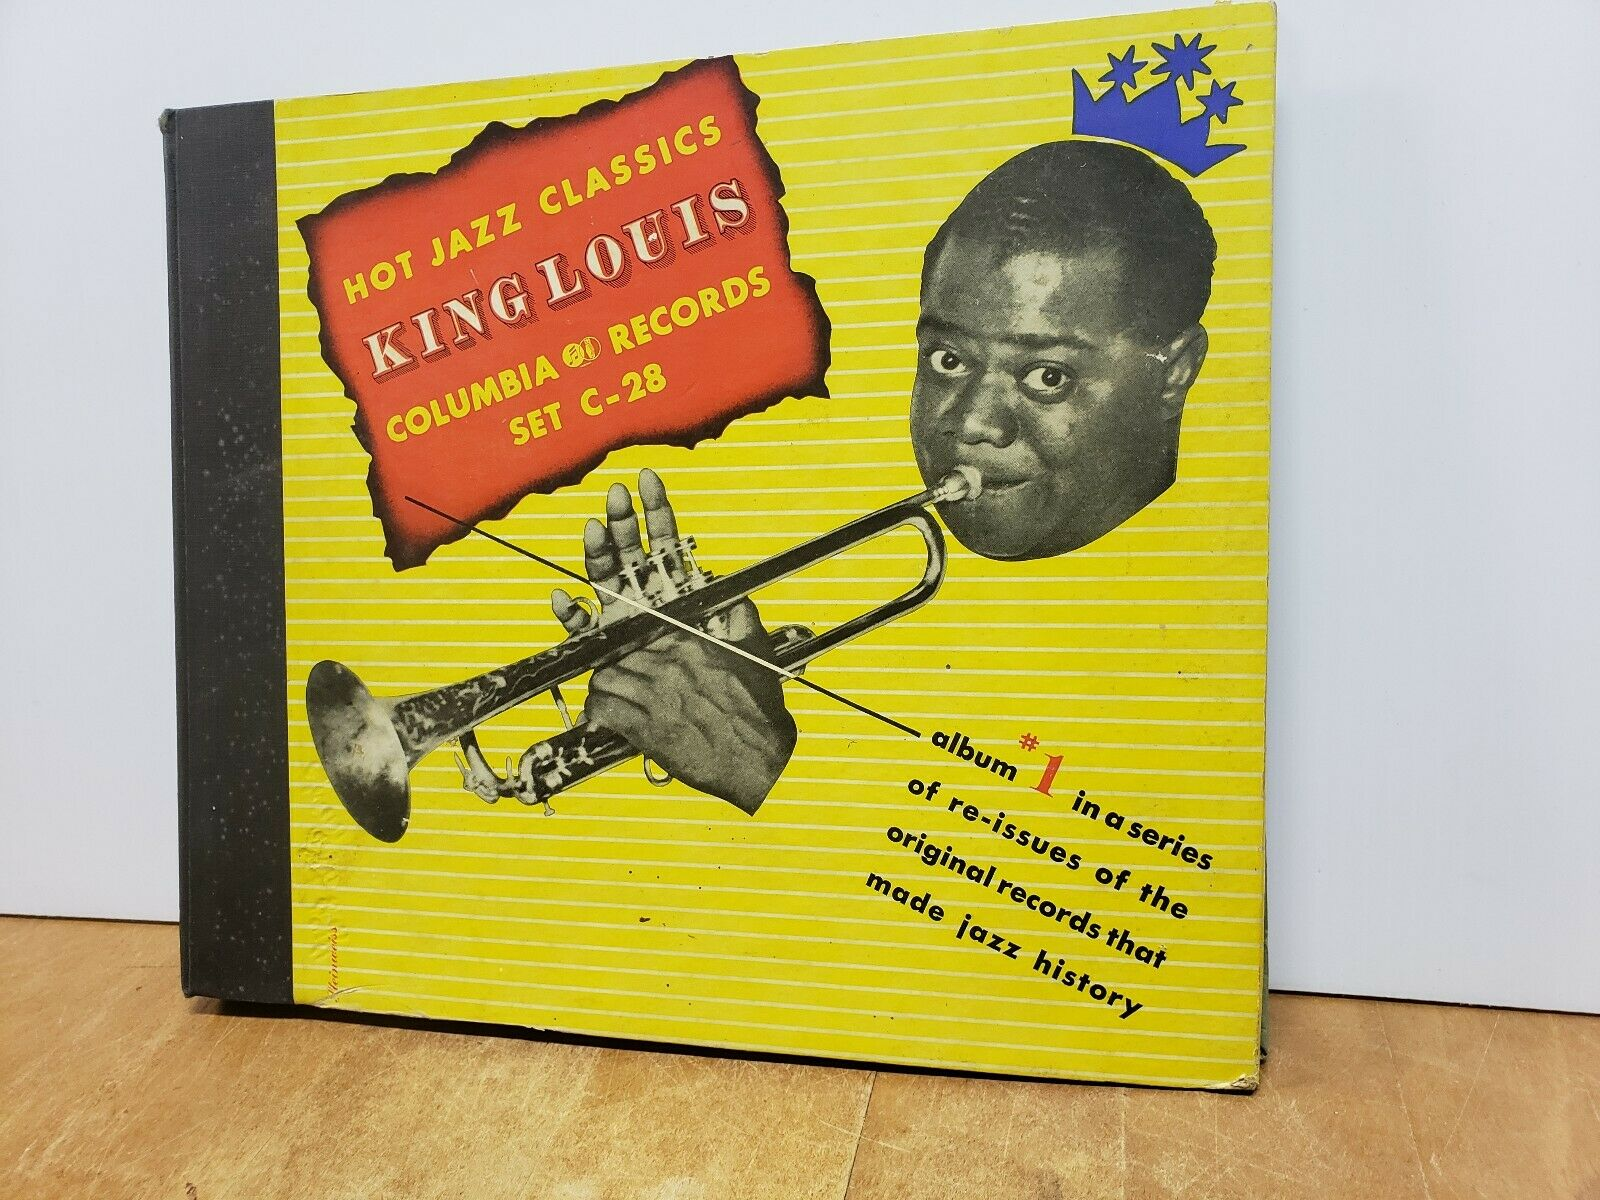 LOUIS ARMSTRONG HOT JAZZ CLASSICS KING LOUIS COLUMBIA RECORDS C-28(FC-41-1-K)